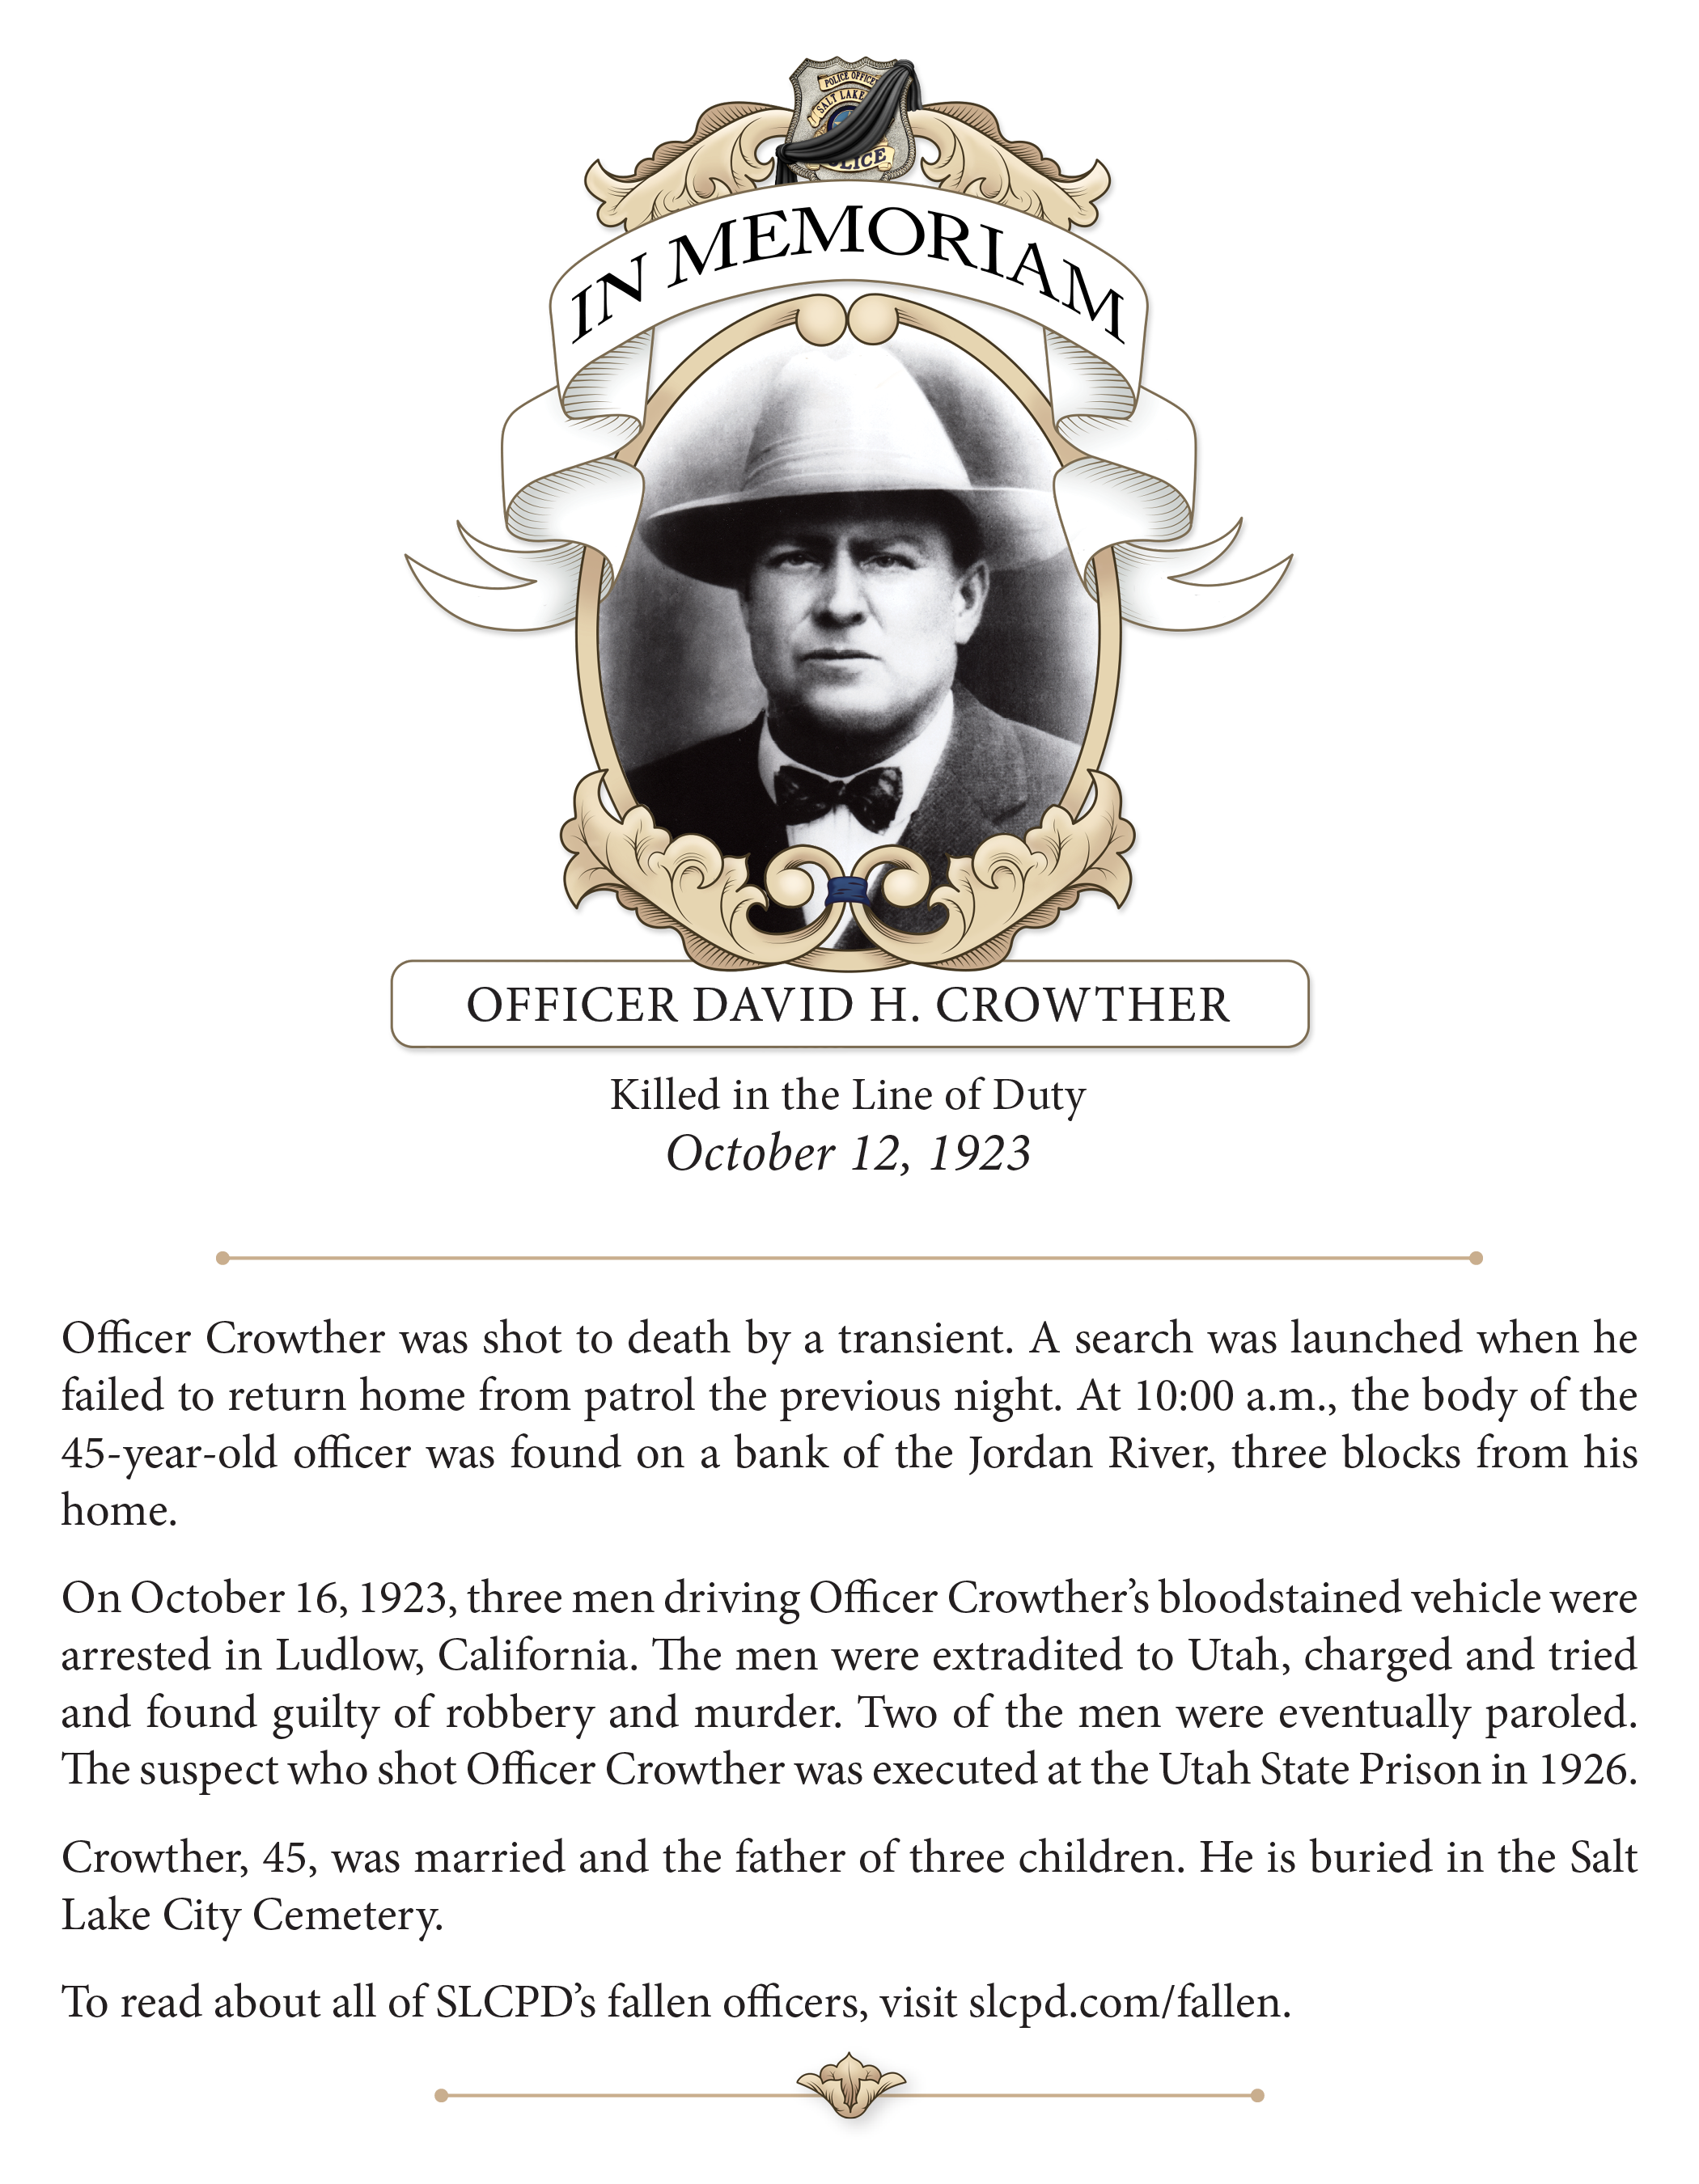 In Memoriam, Officer Crowther (1923)